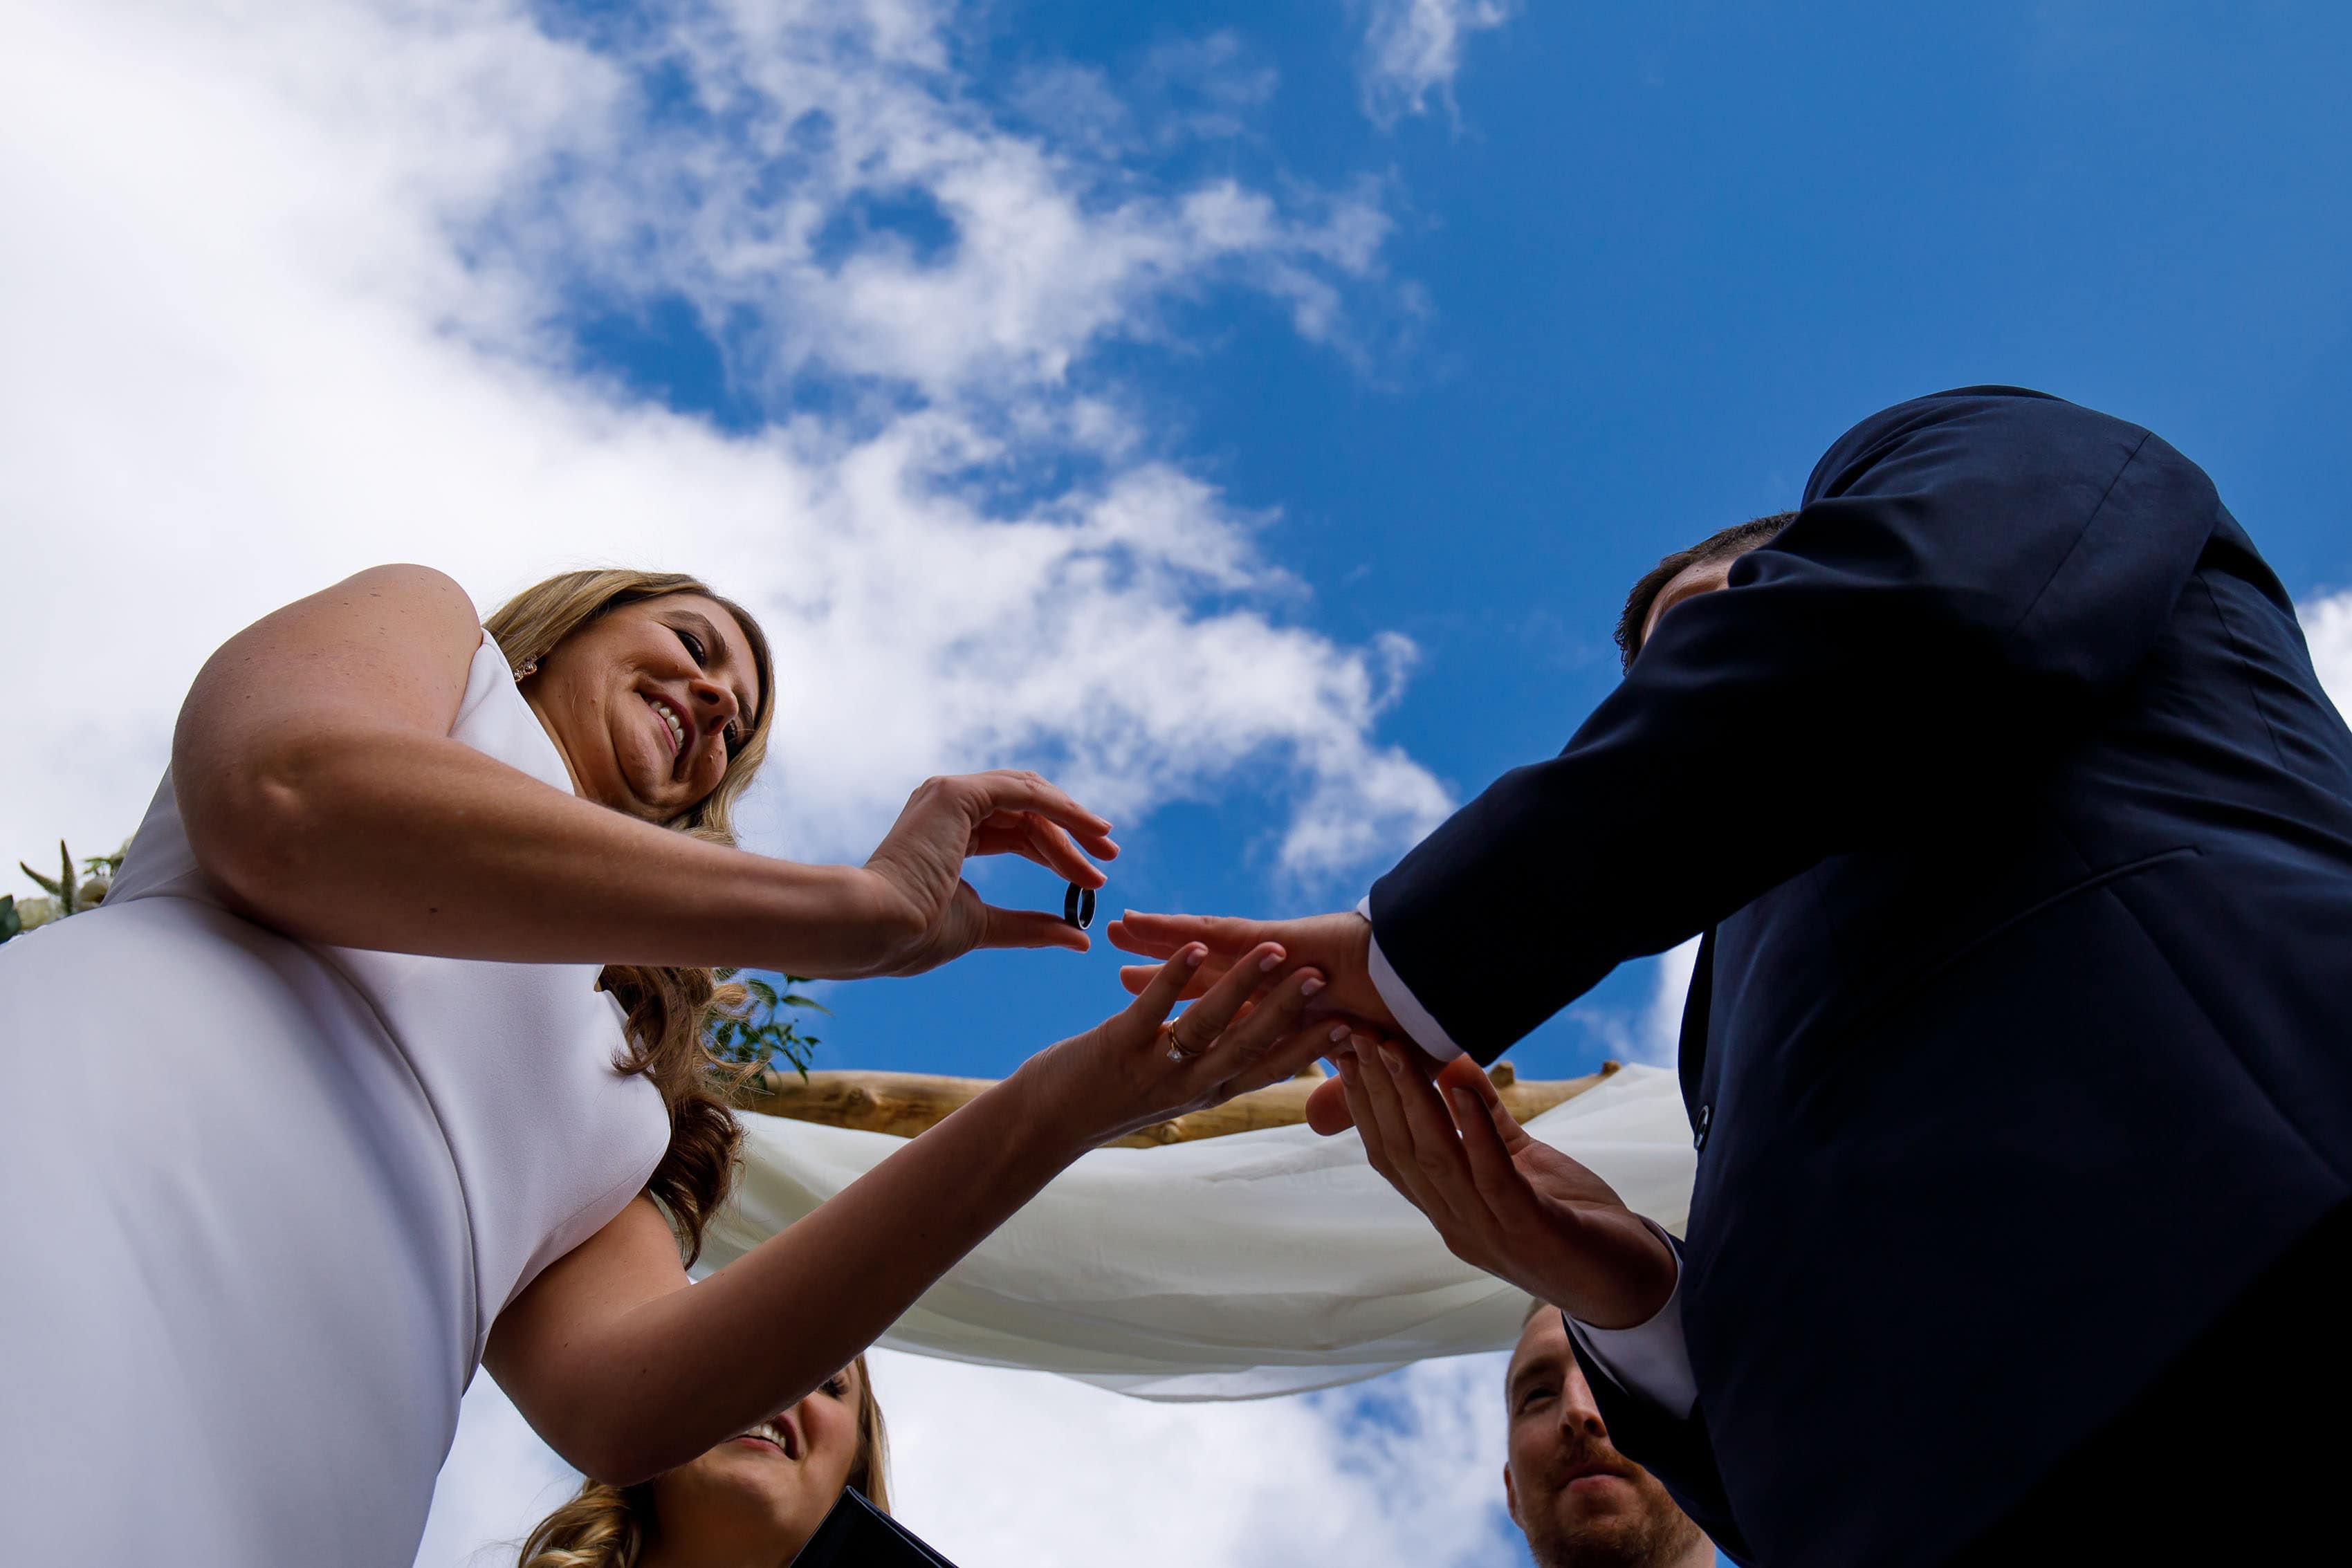 The bride puts a wedding ring on the grooms finger